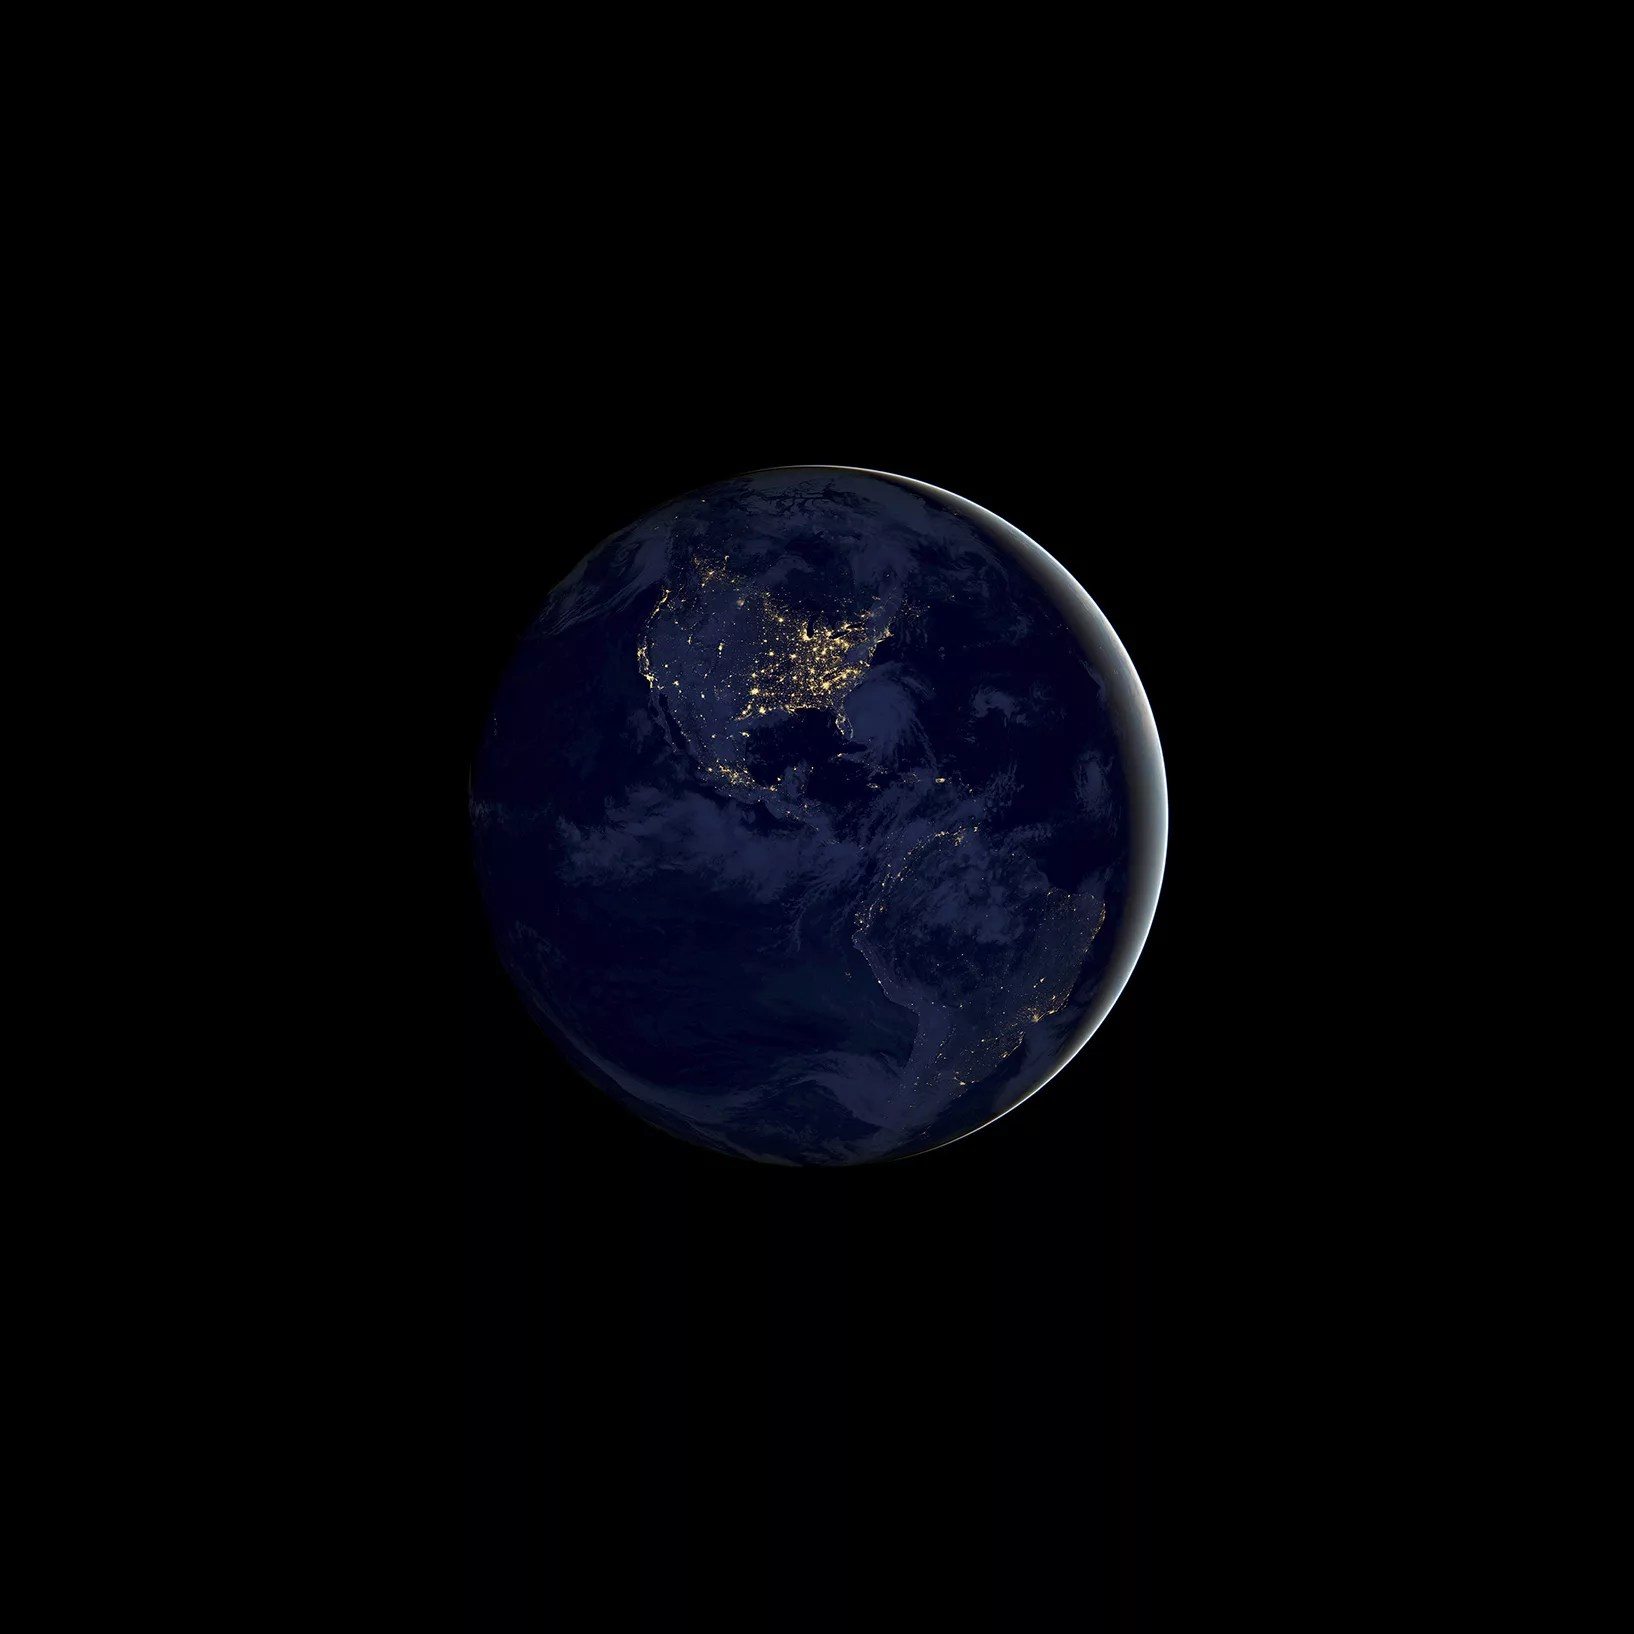 ios_11_gm_wallpaper_earth-night-1